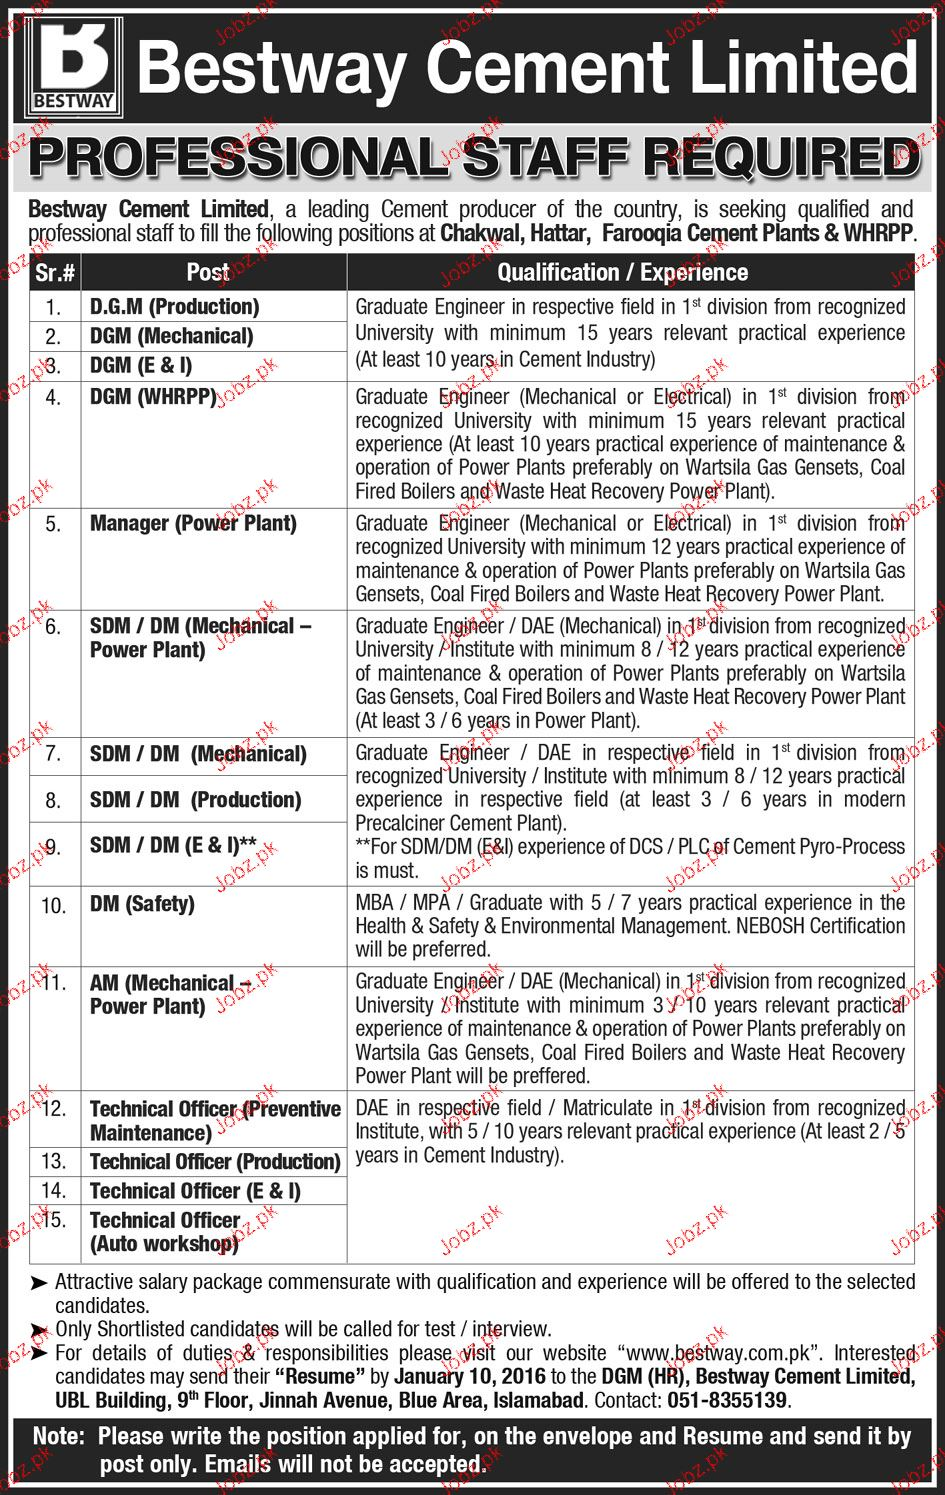 Director General Manager, Manager Power Plant Wanted